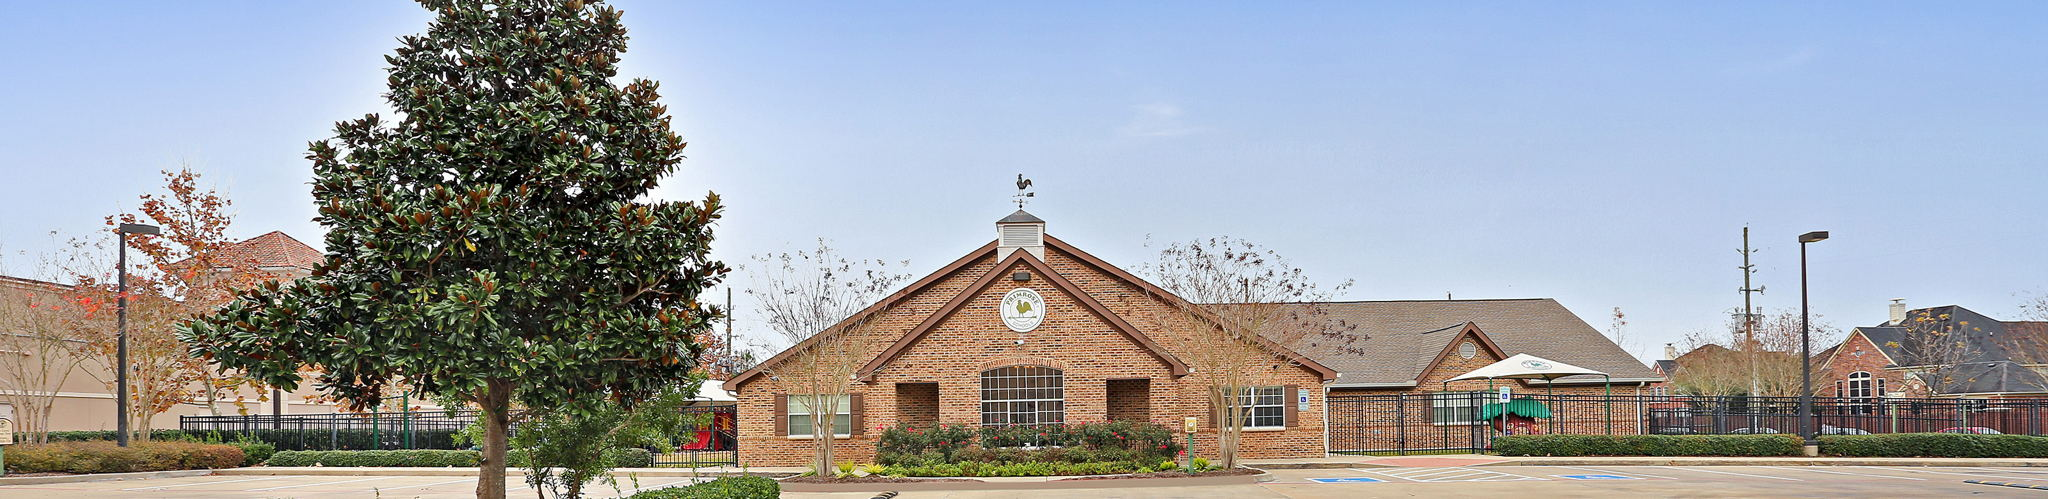 Exterior of a Primrose School at Waterside Estates